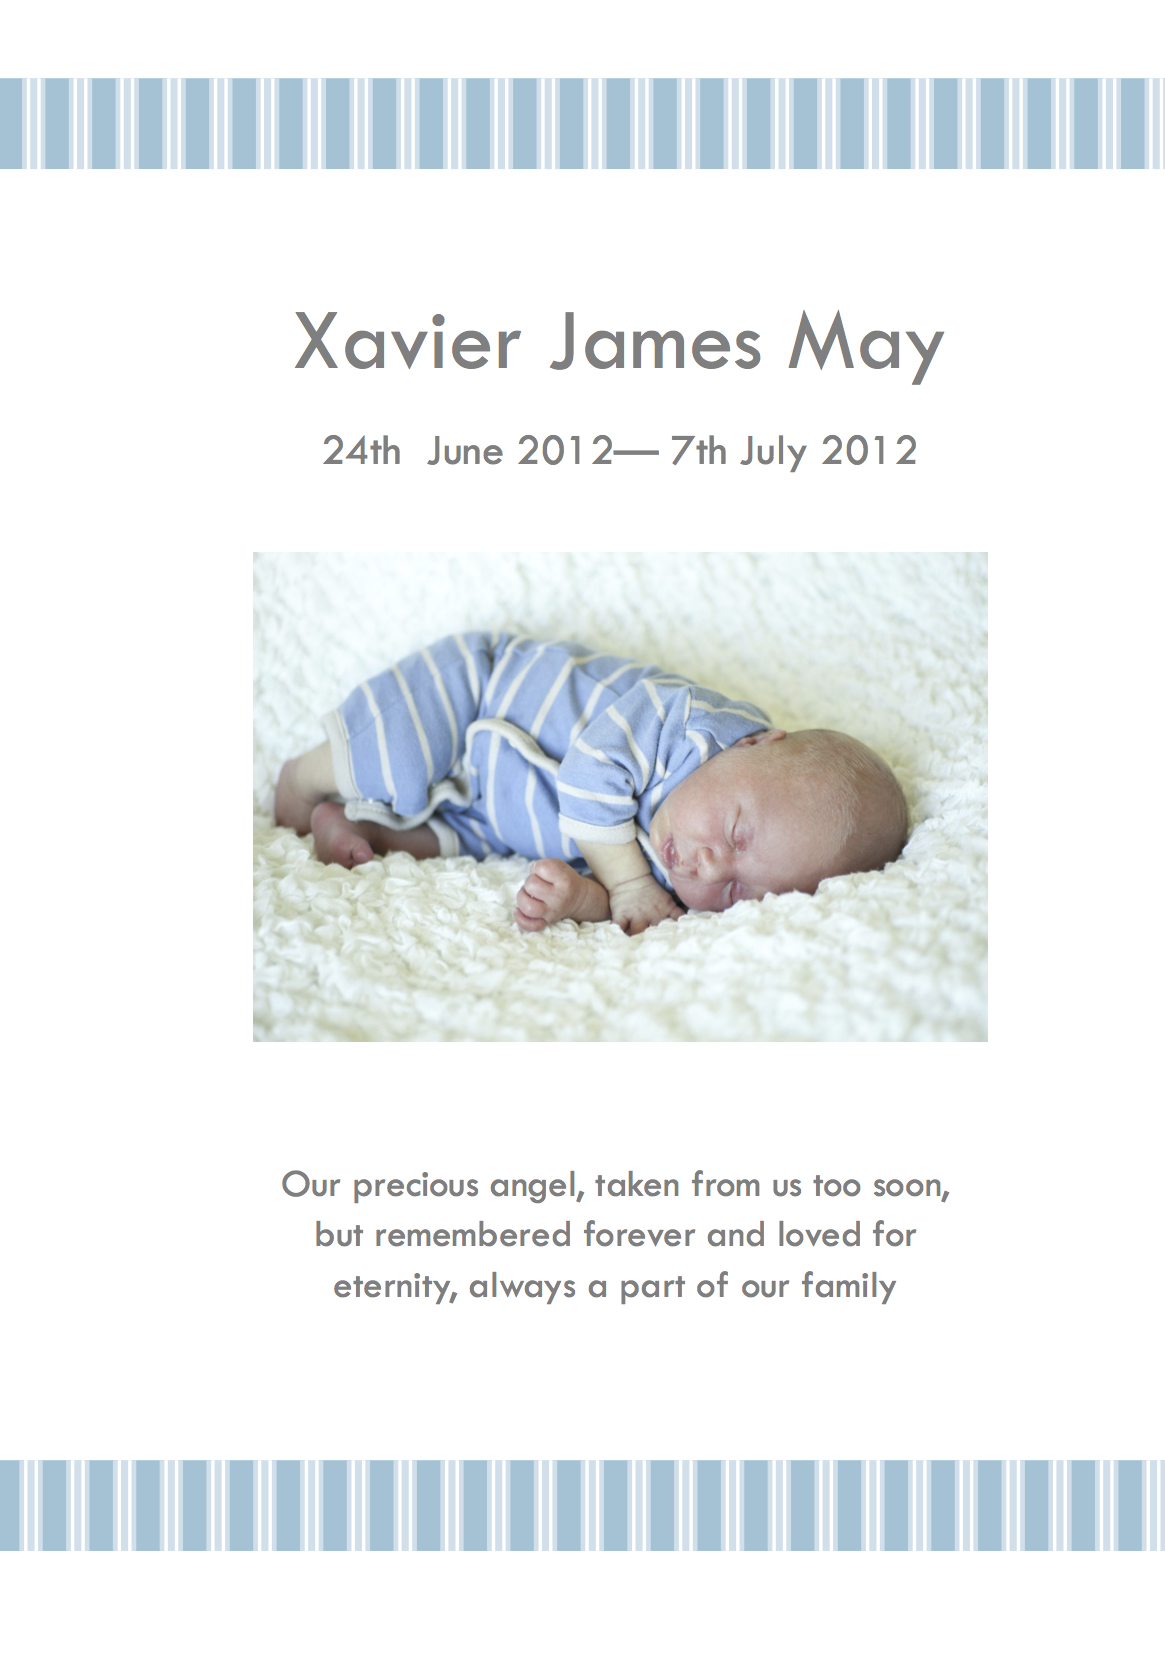 The First Funeral Since Xavier S